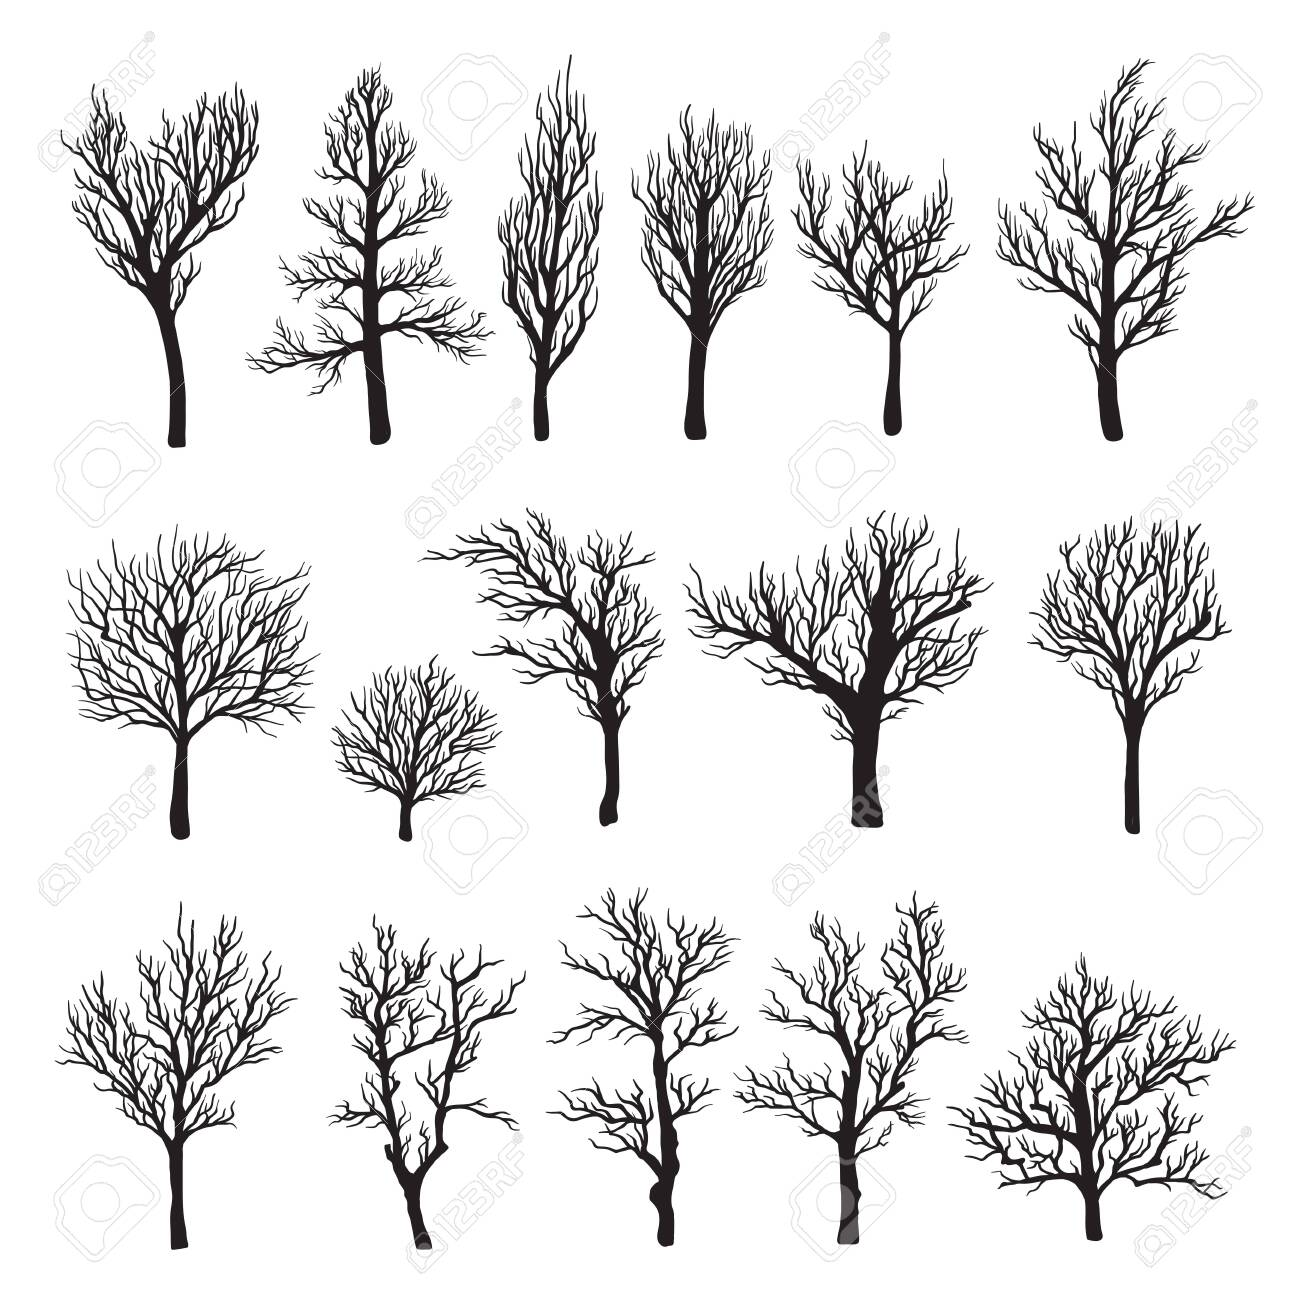 Trees without leaves black graphic silhouette icon - 123647407